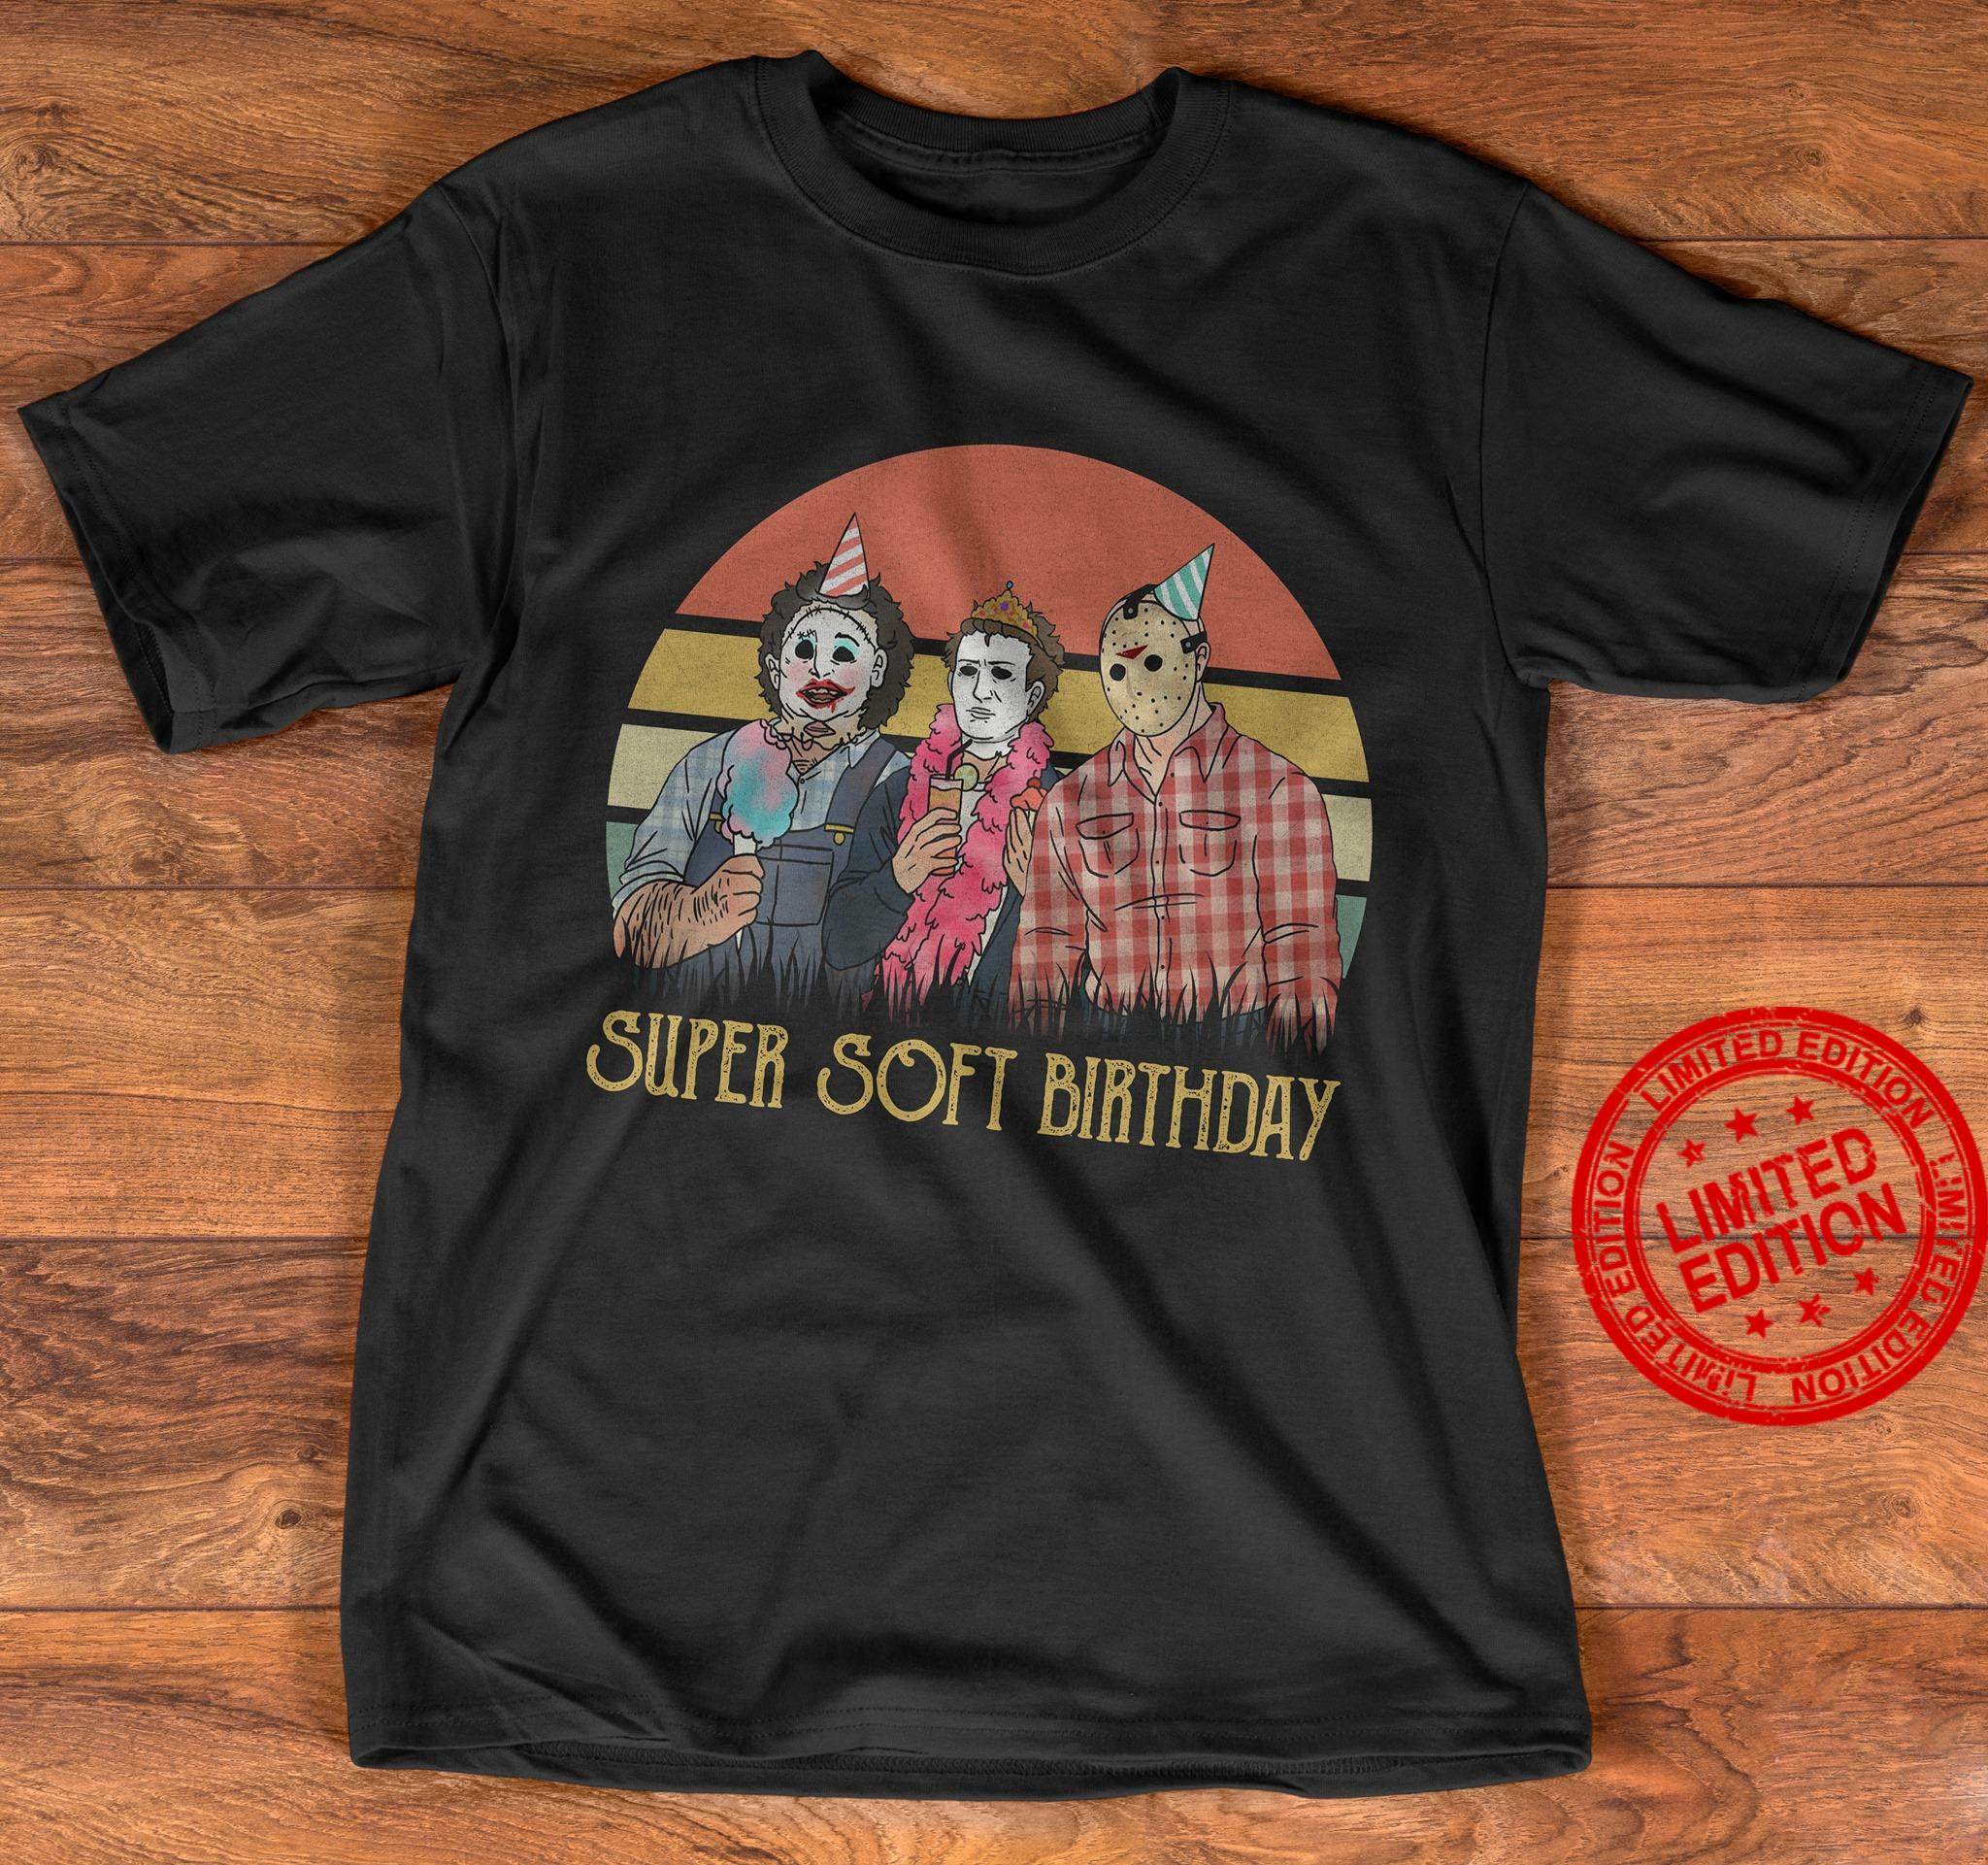 Super Soft Birthday Shirt